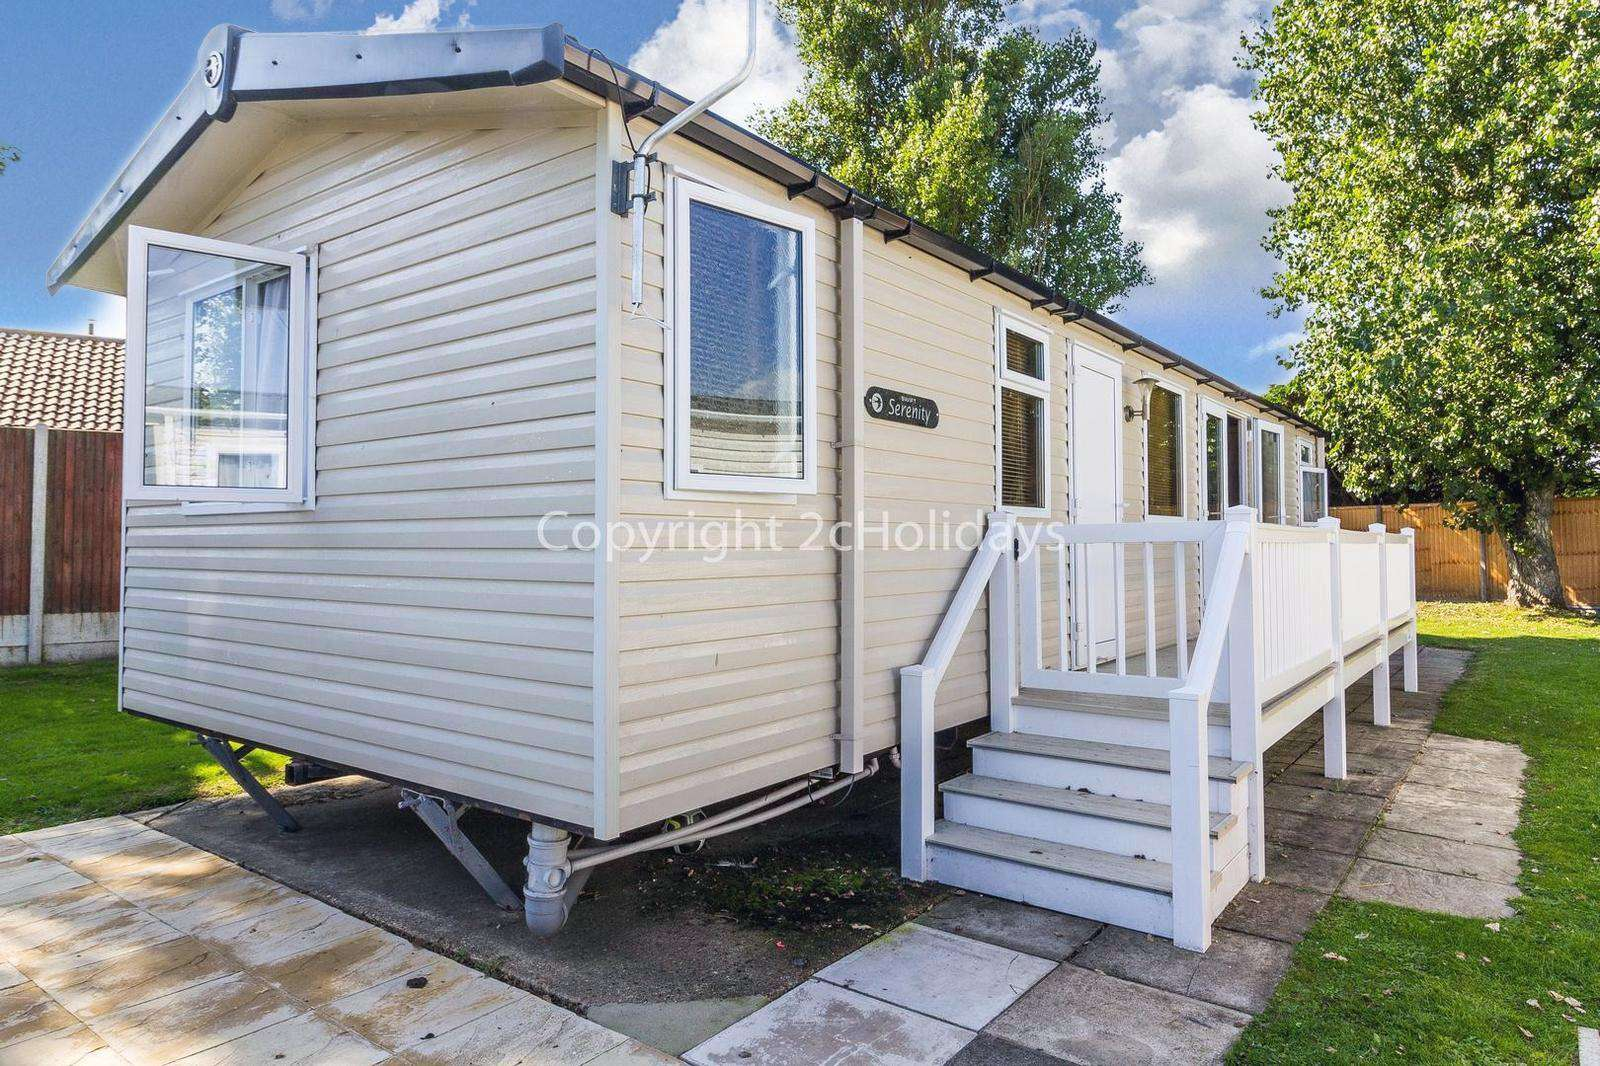 Caravan for hire with decking.